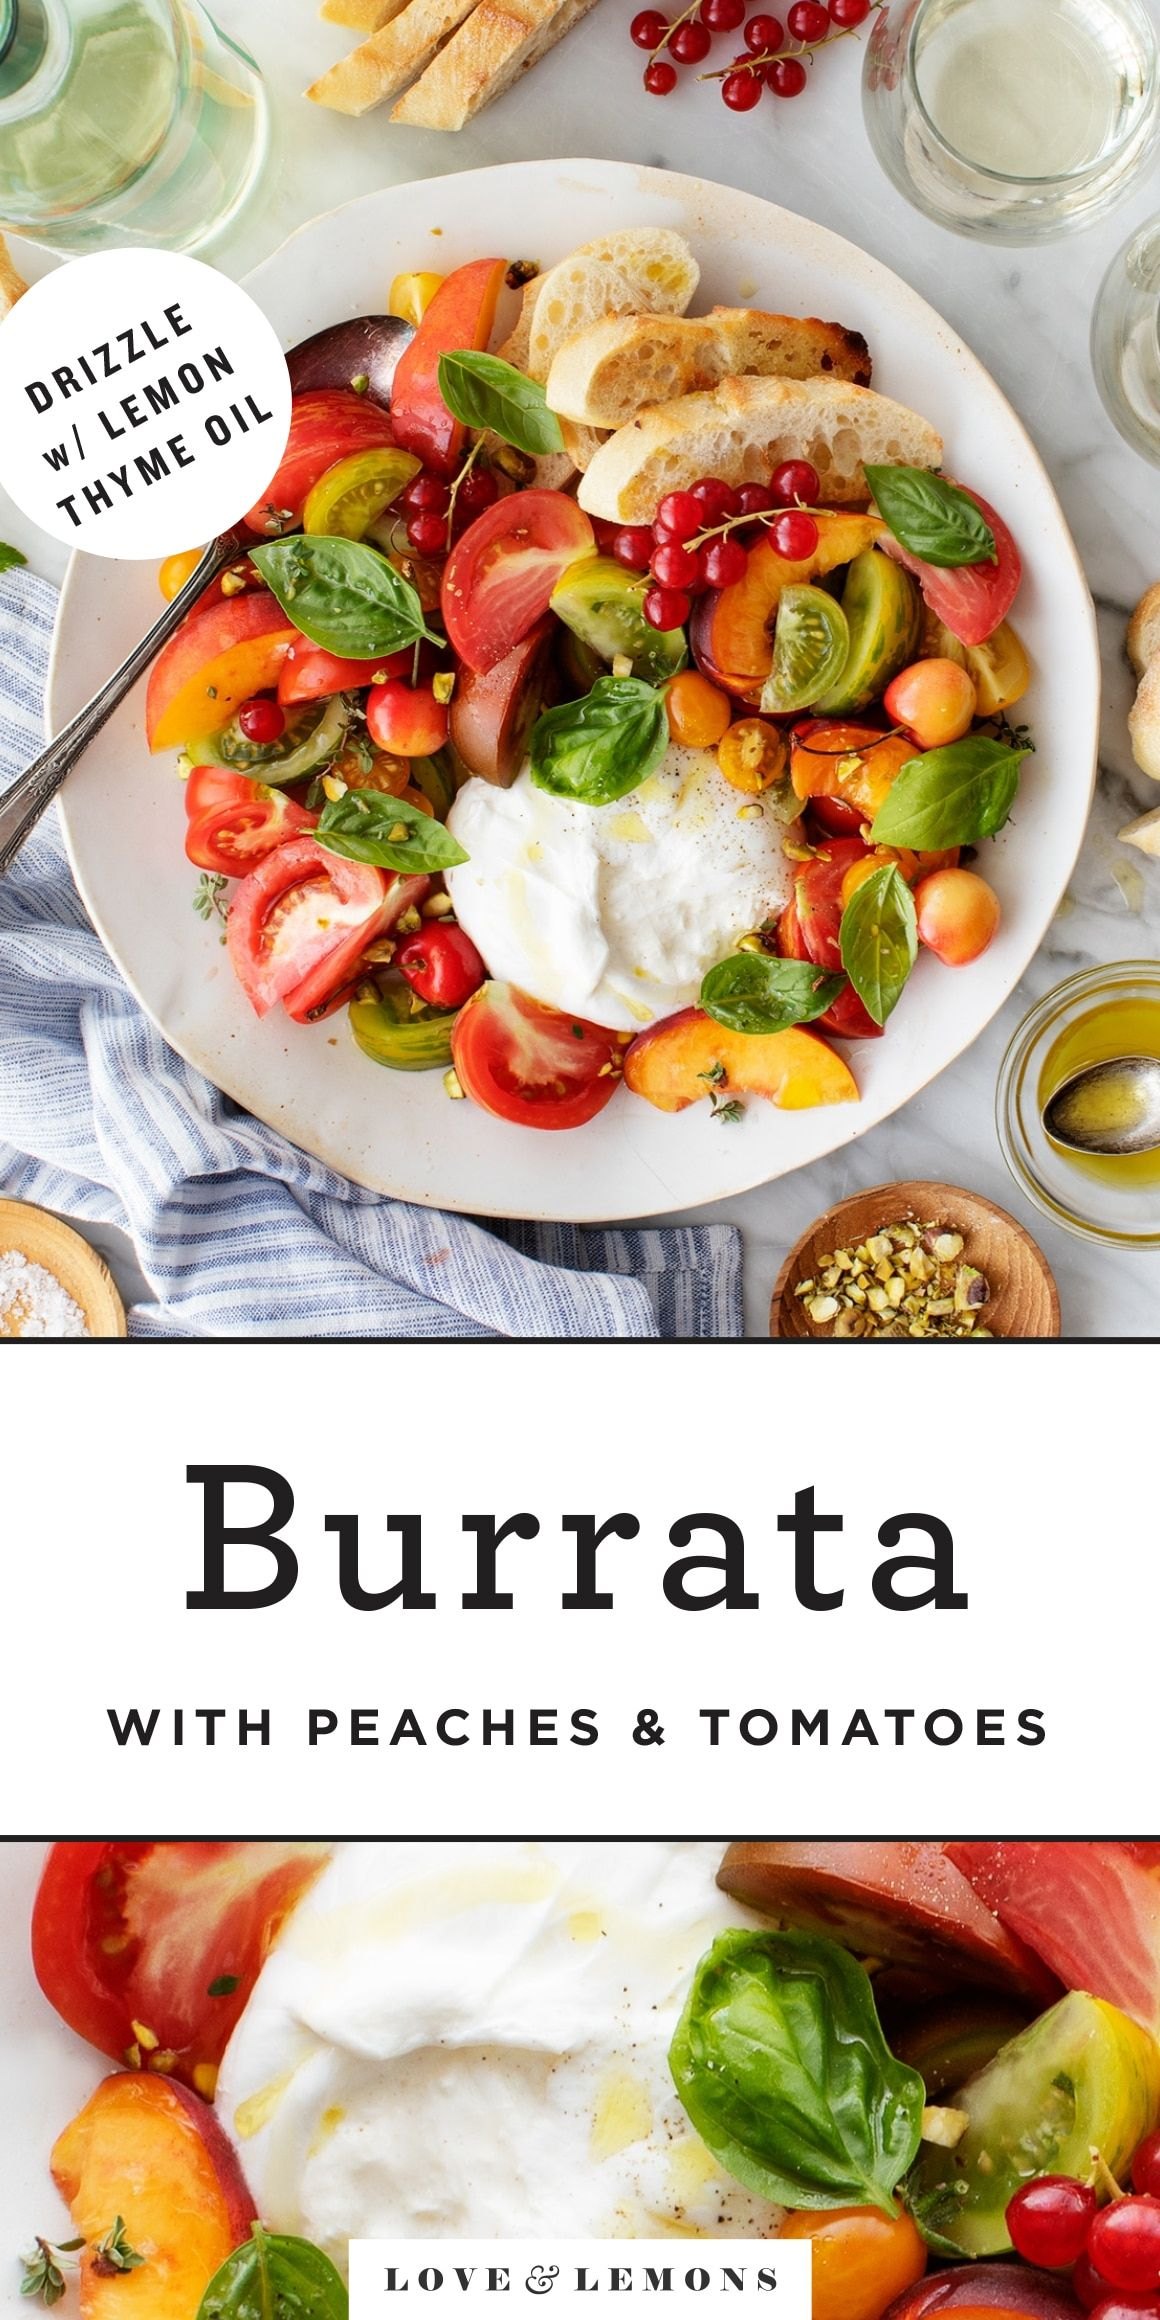 Burrata with Heirloom Tomatoes Recipe - Love and Lemons